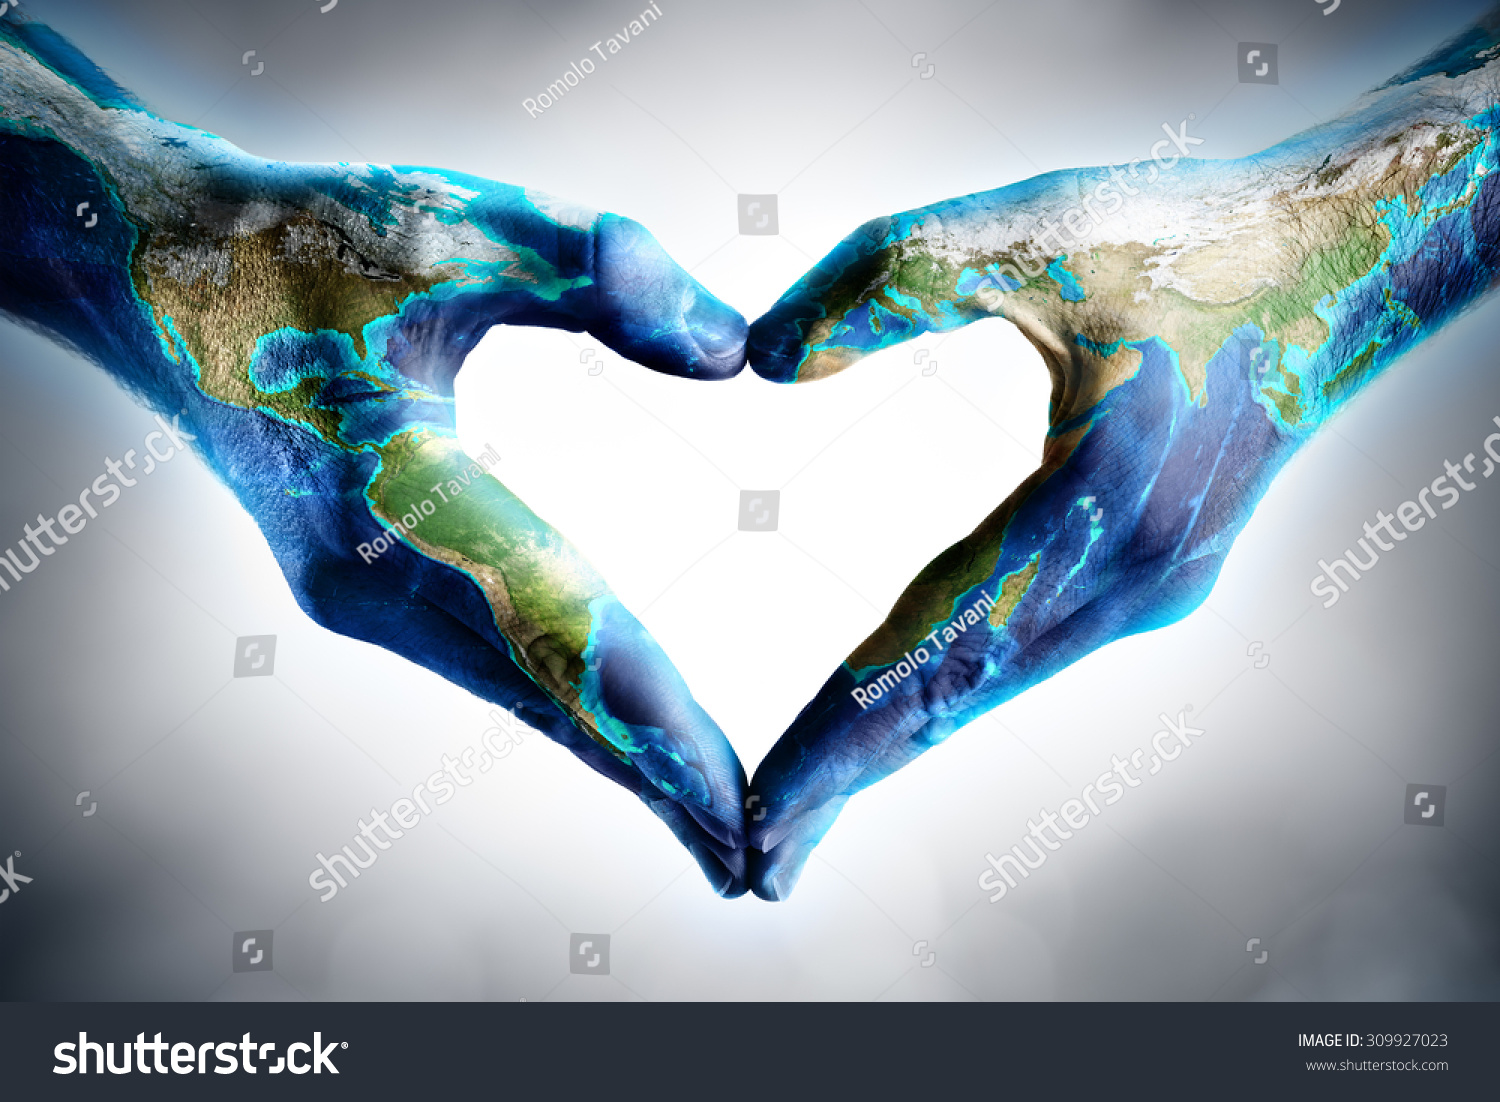 earth u0026 39 s day celebration - hands shaped heart with world map